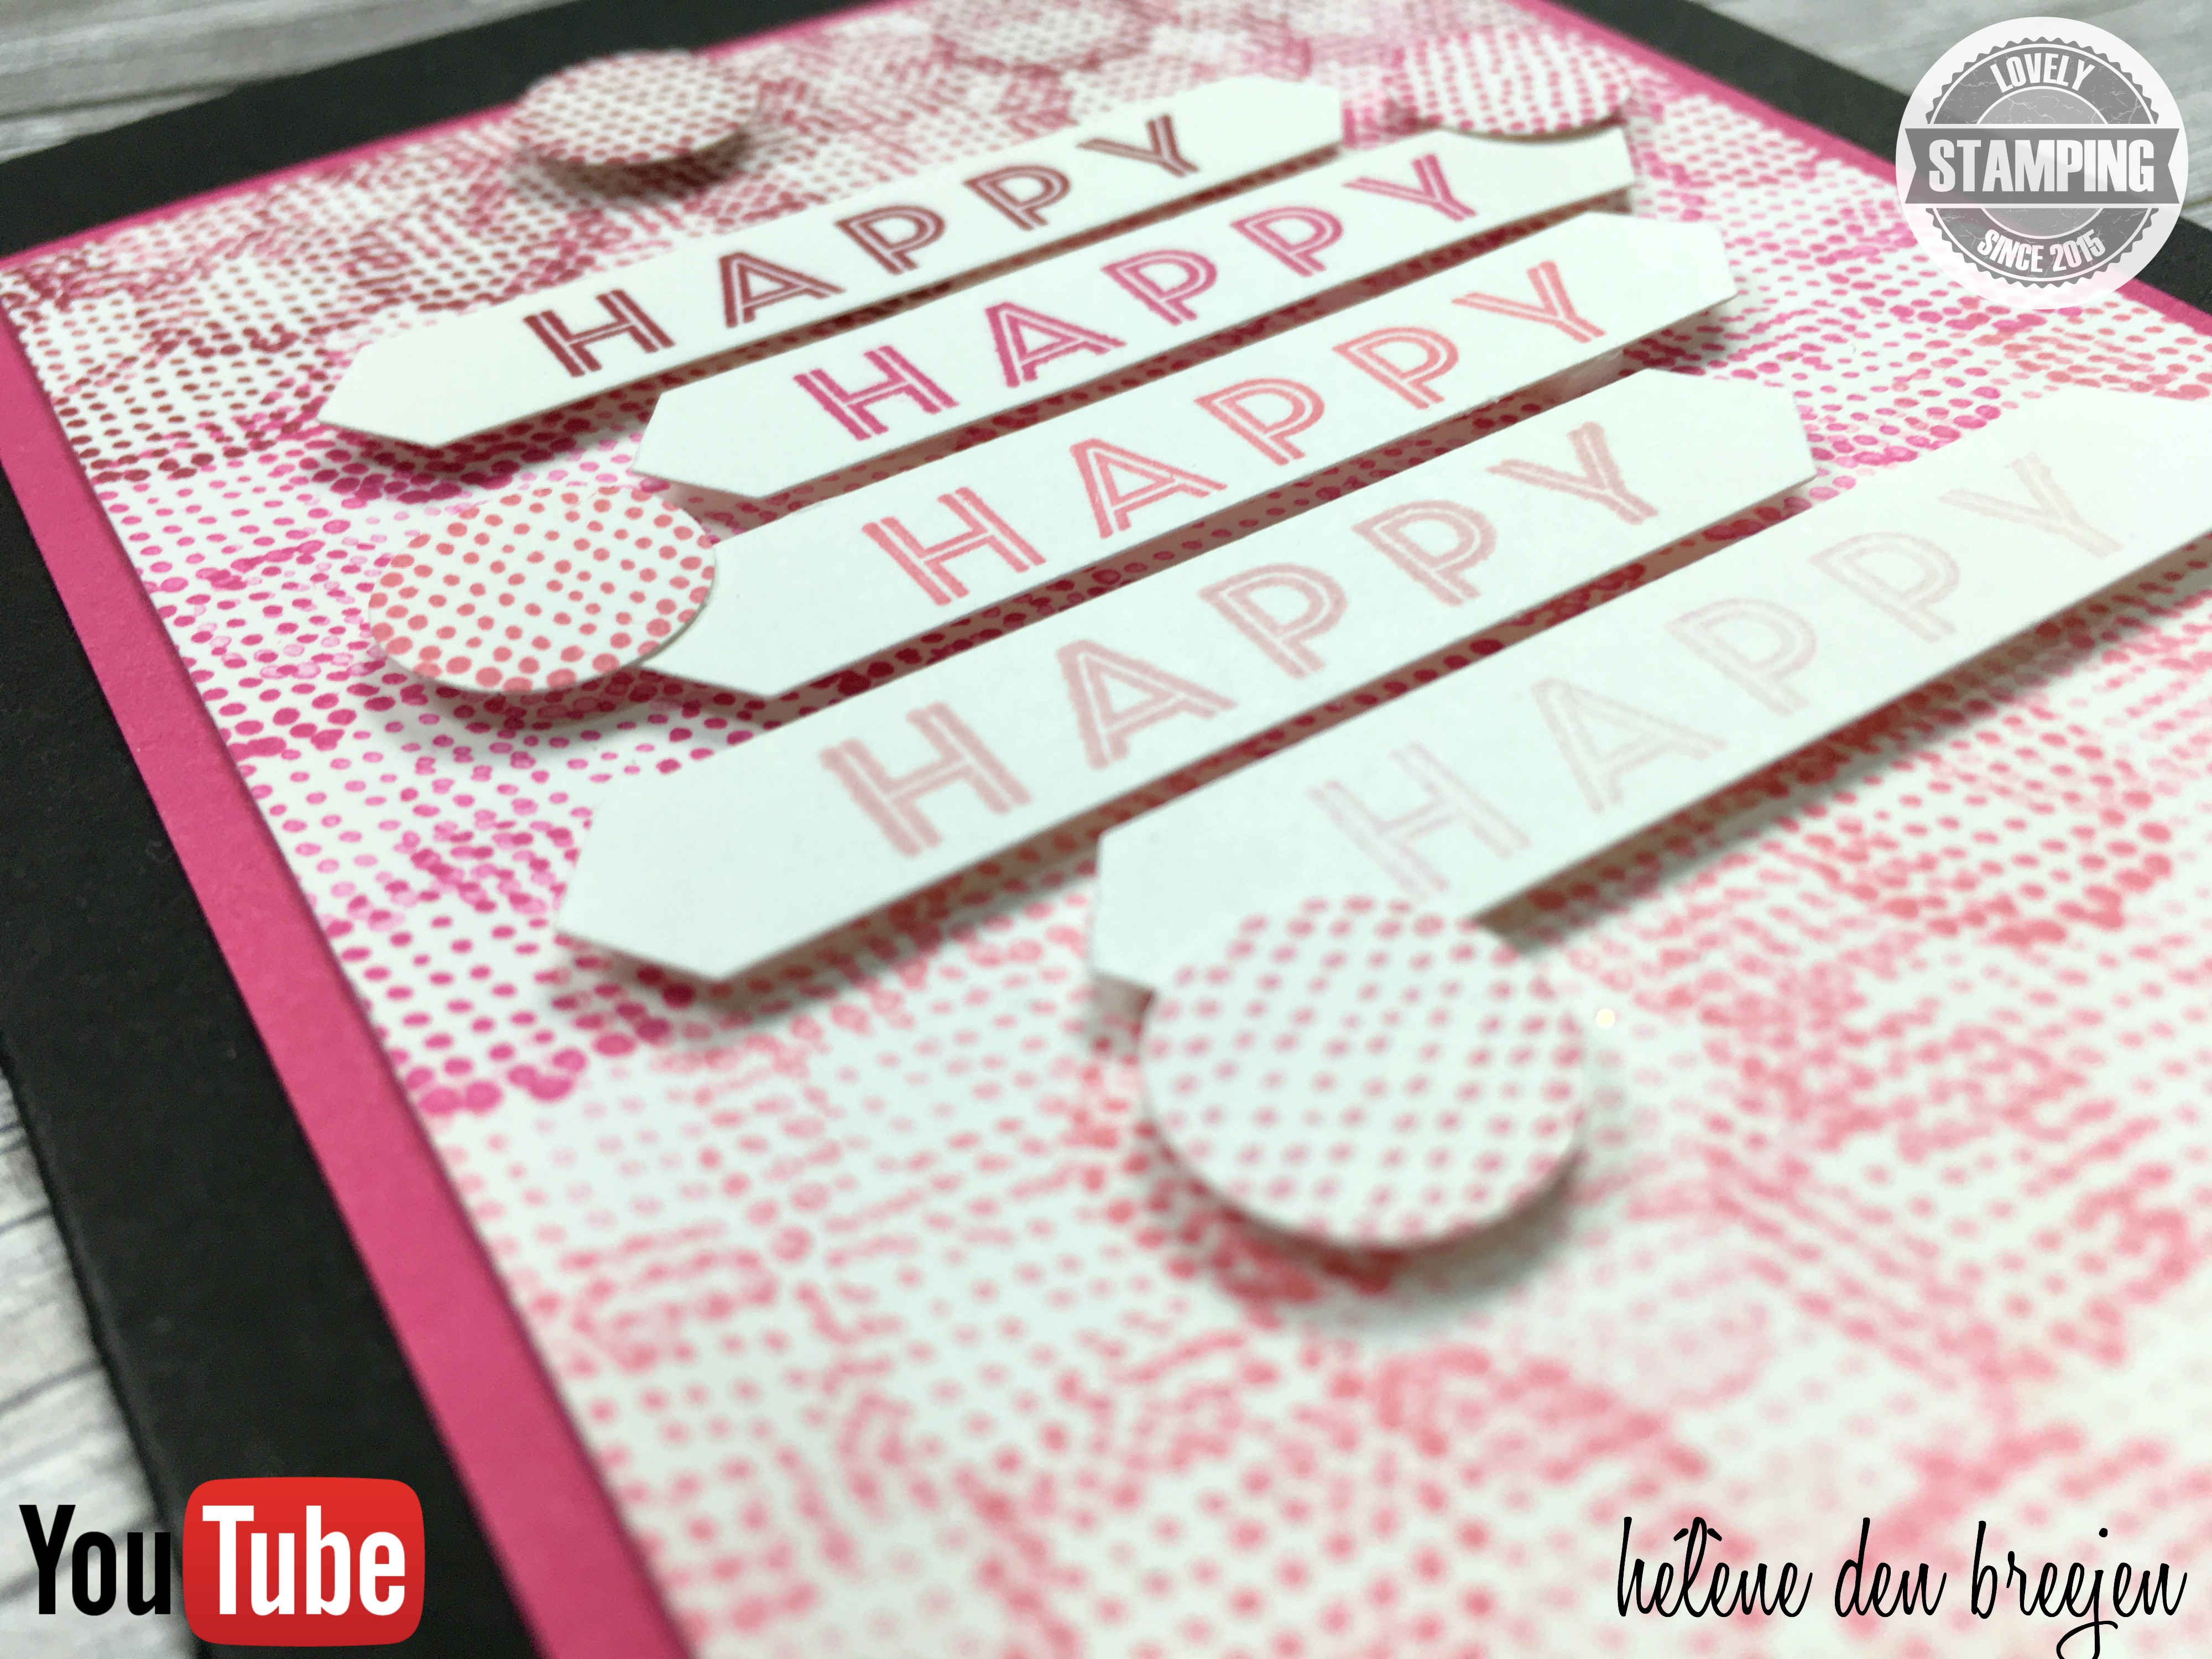 Stampin'Up! Eclectic expressions